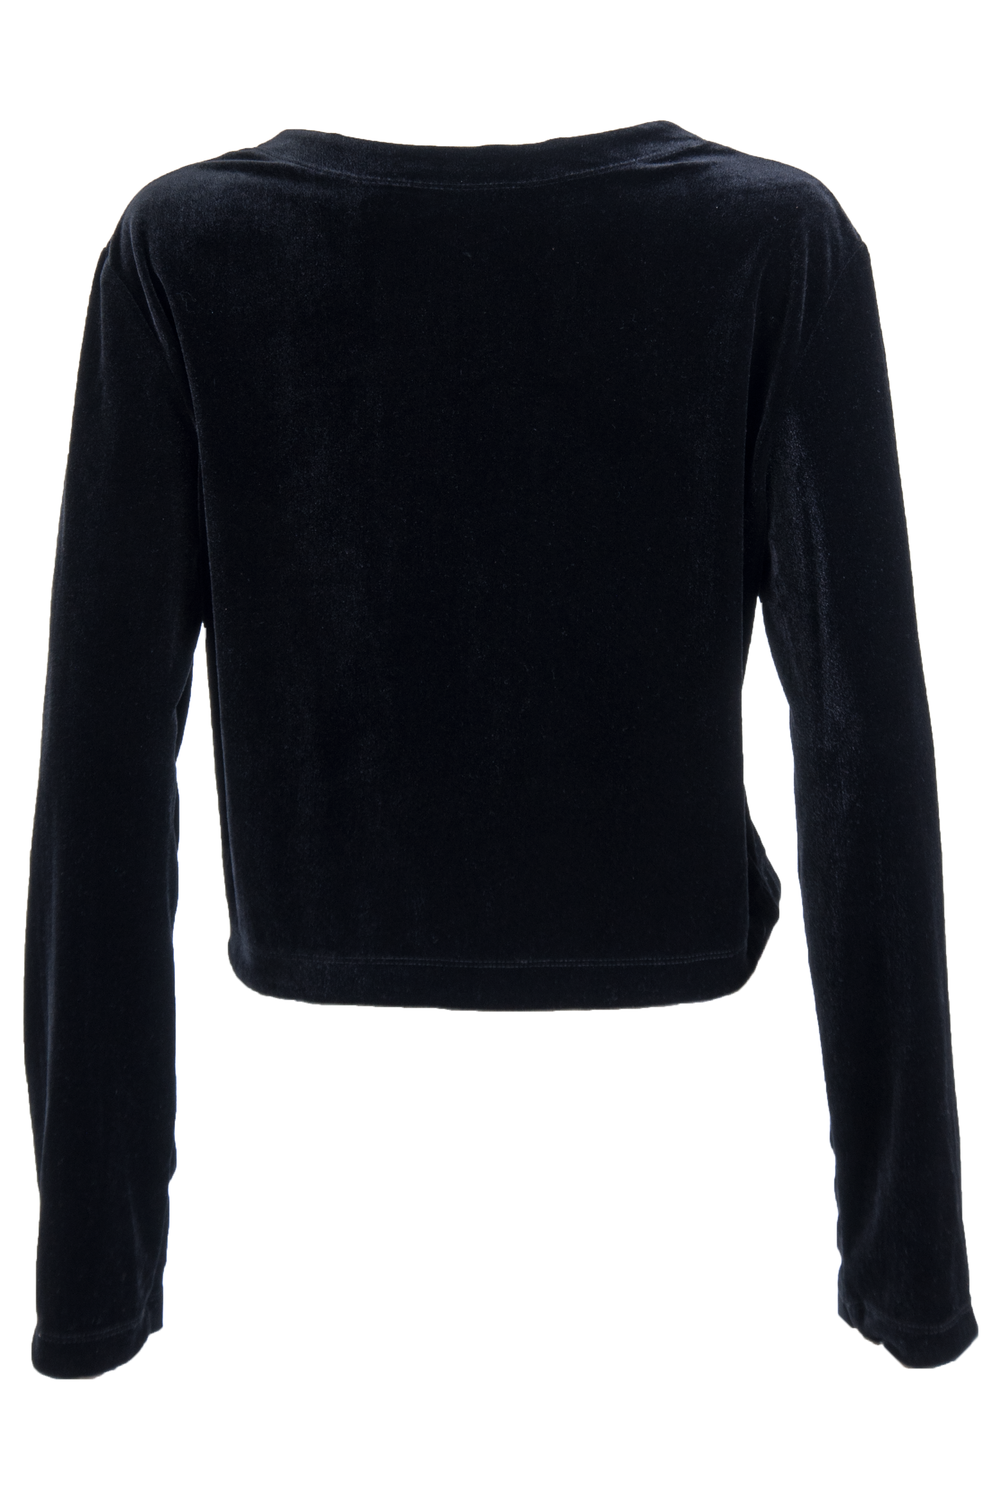 vintage black velvet sweater